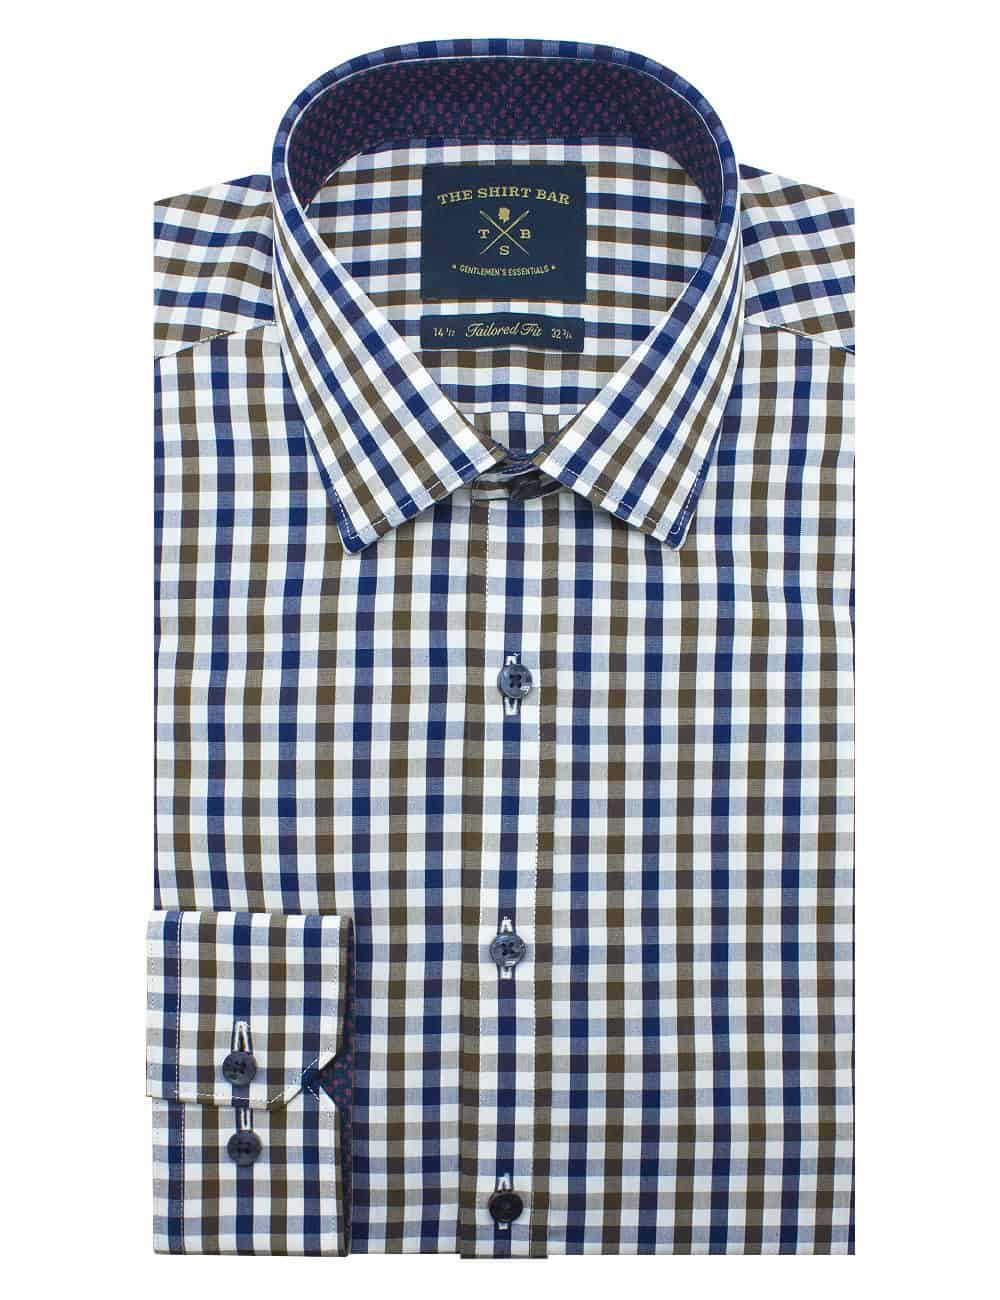 Tailored Fit 100% Premium Cotton White/ Brown/ Navy Checks Long Sleeve Single Cuff Shirt TF2A3.17